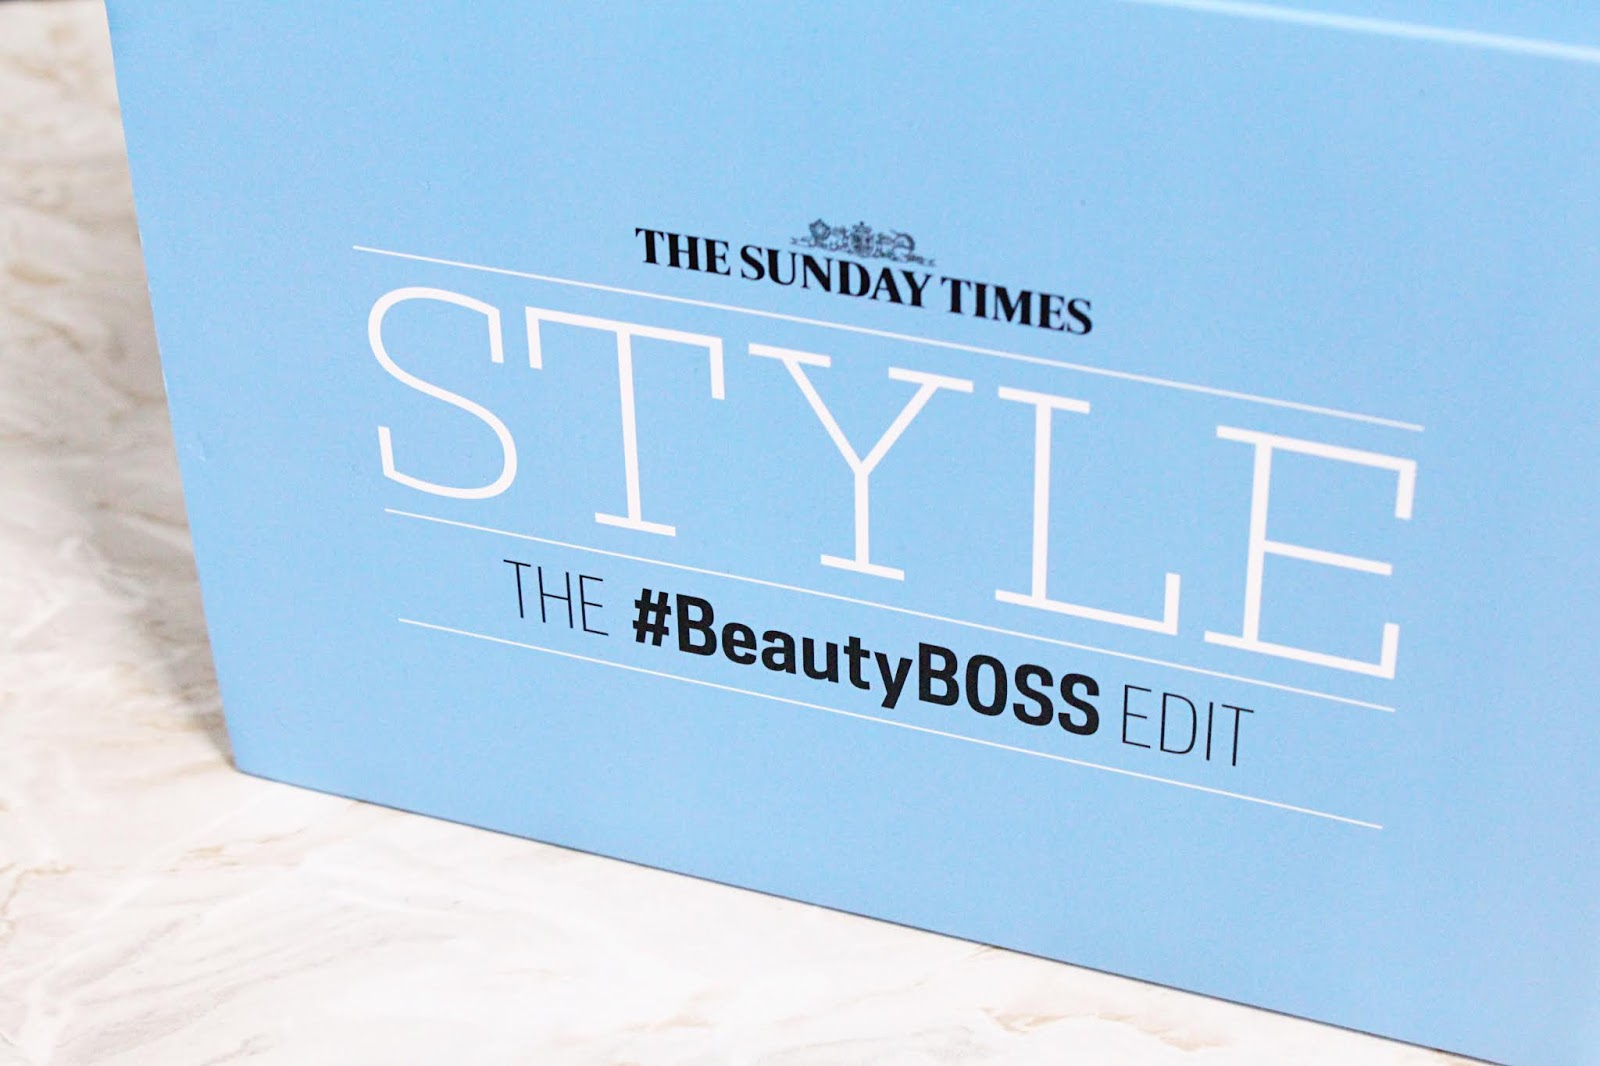 The Sunday Times Style The #BeautyBOSS Edit